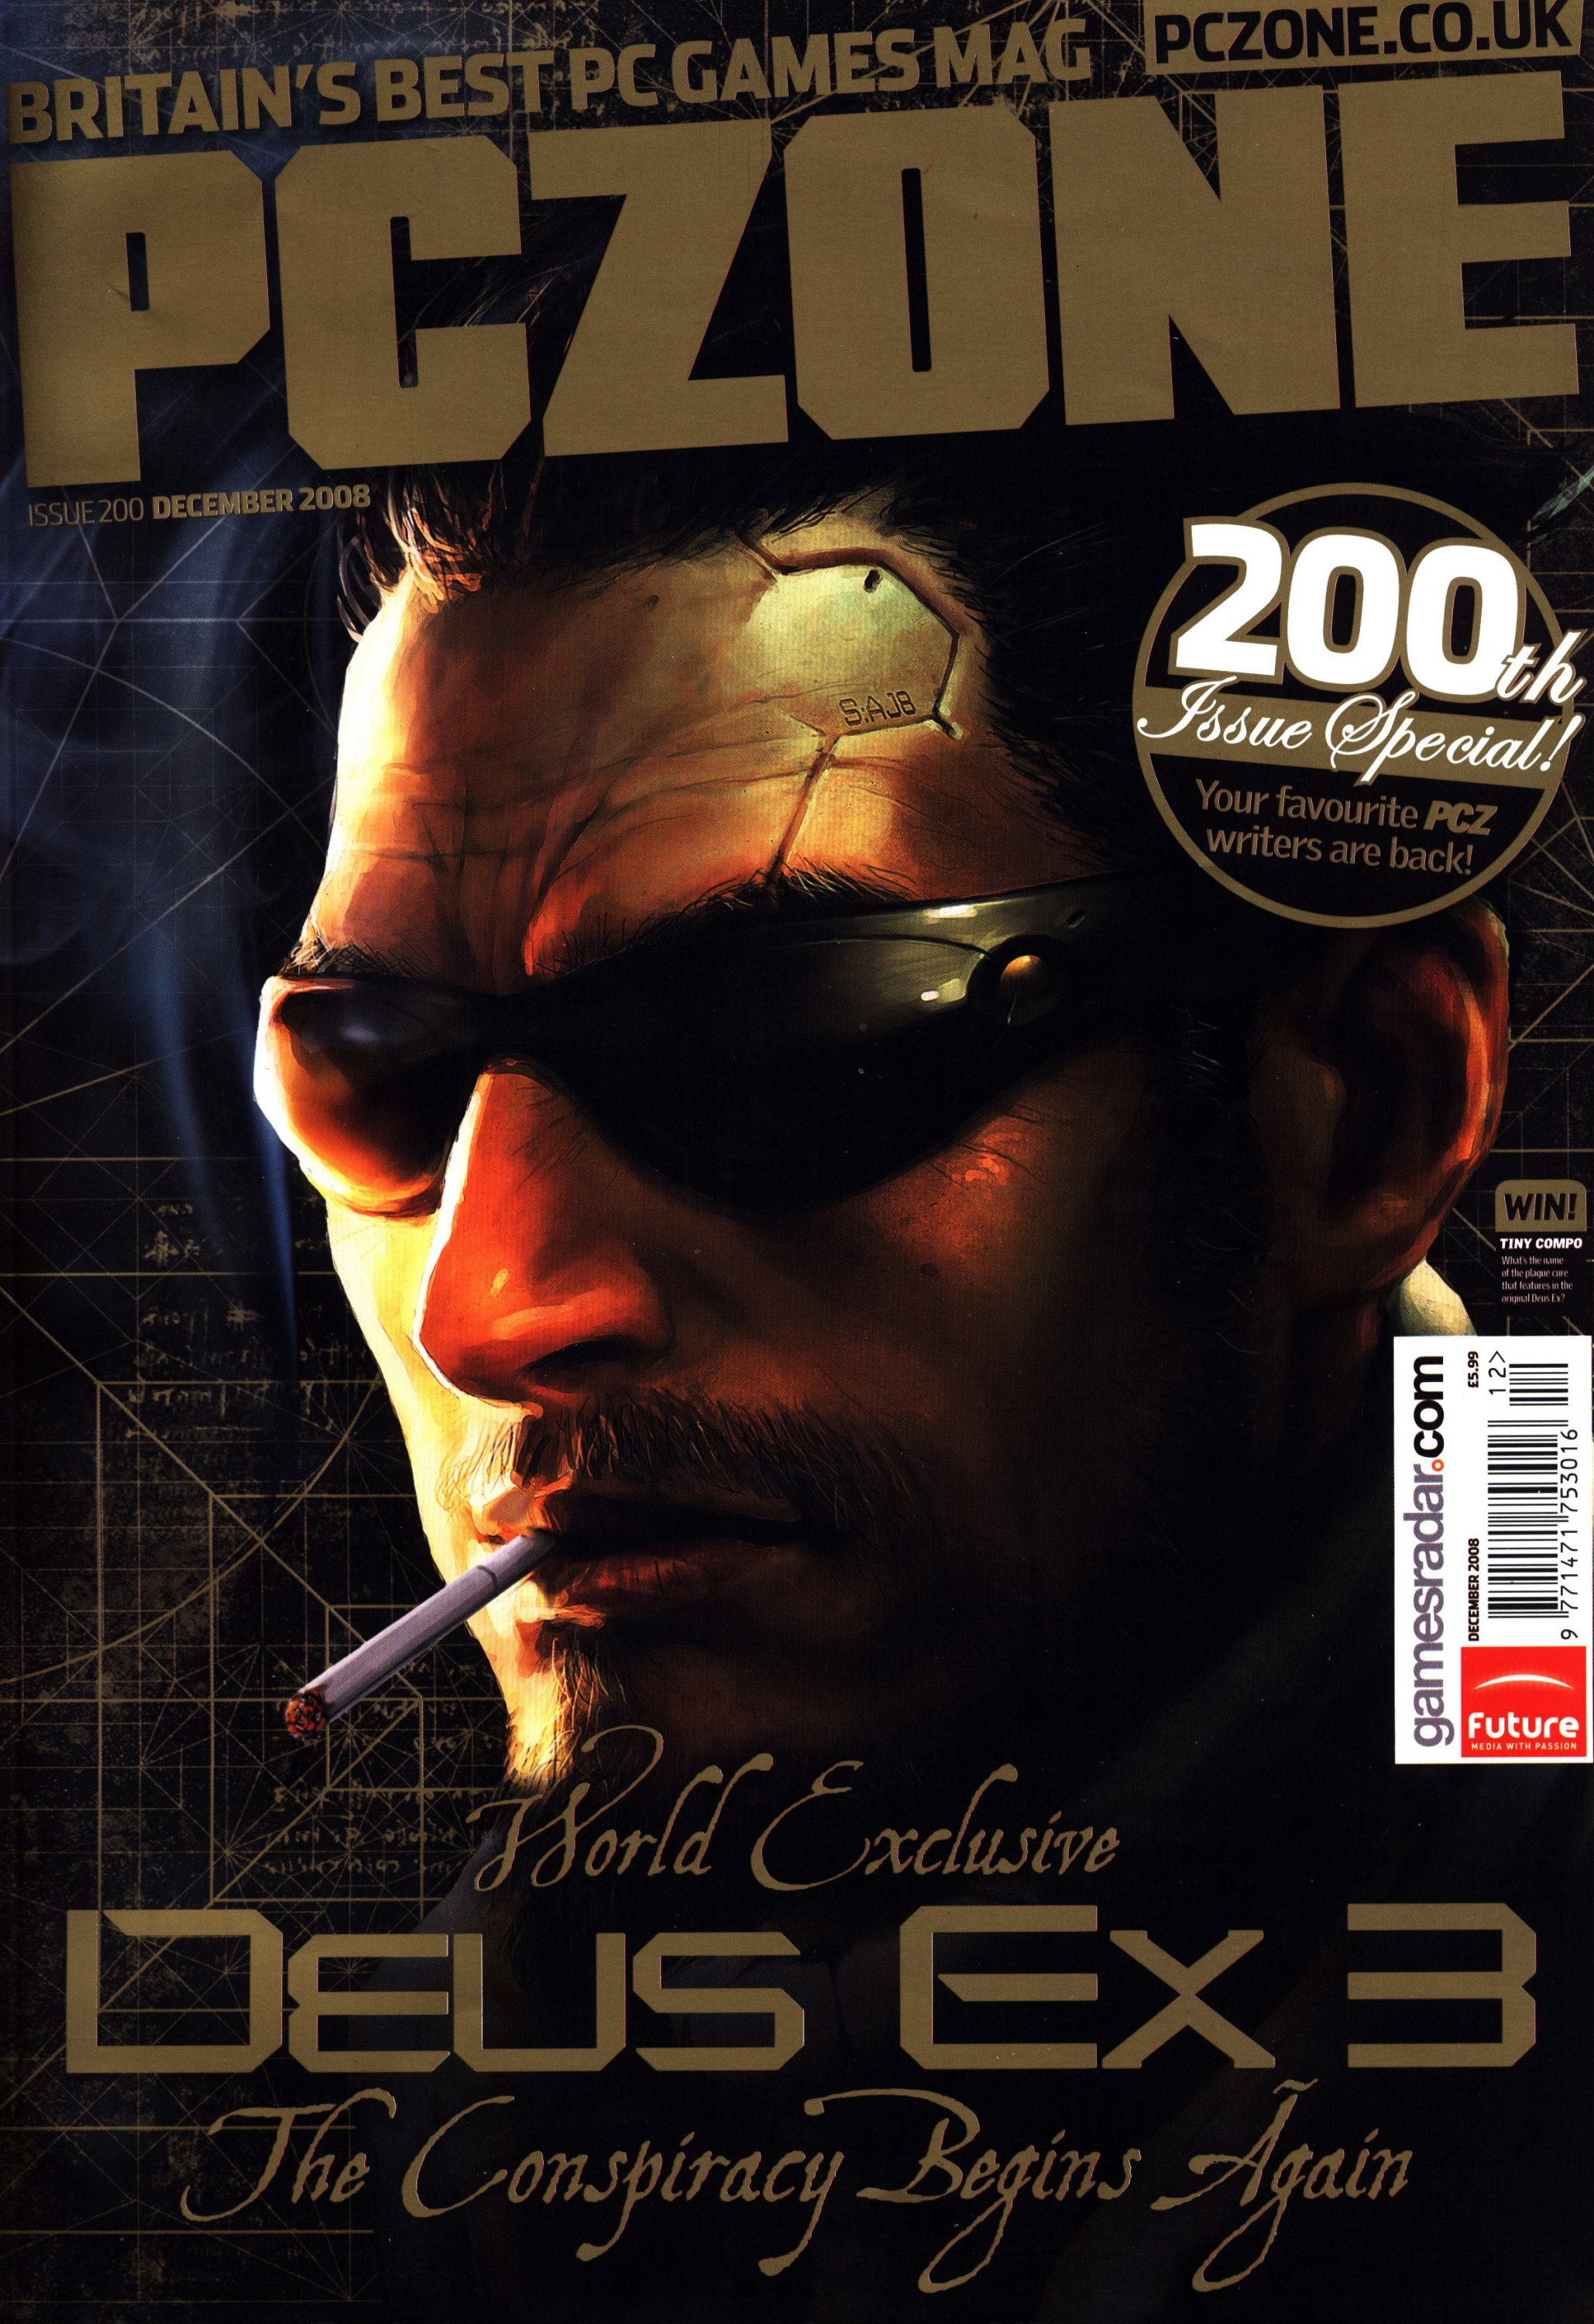 PC Zone Issue 200 (December 2008)